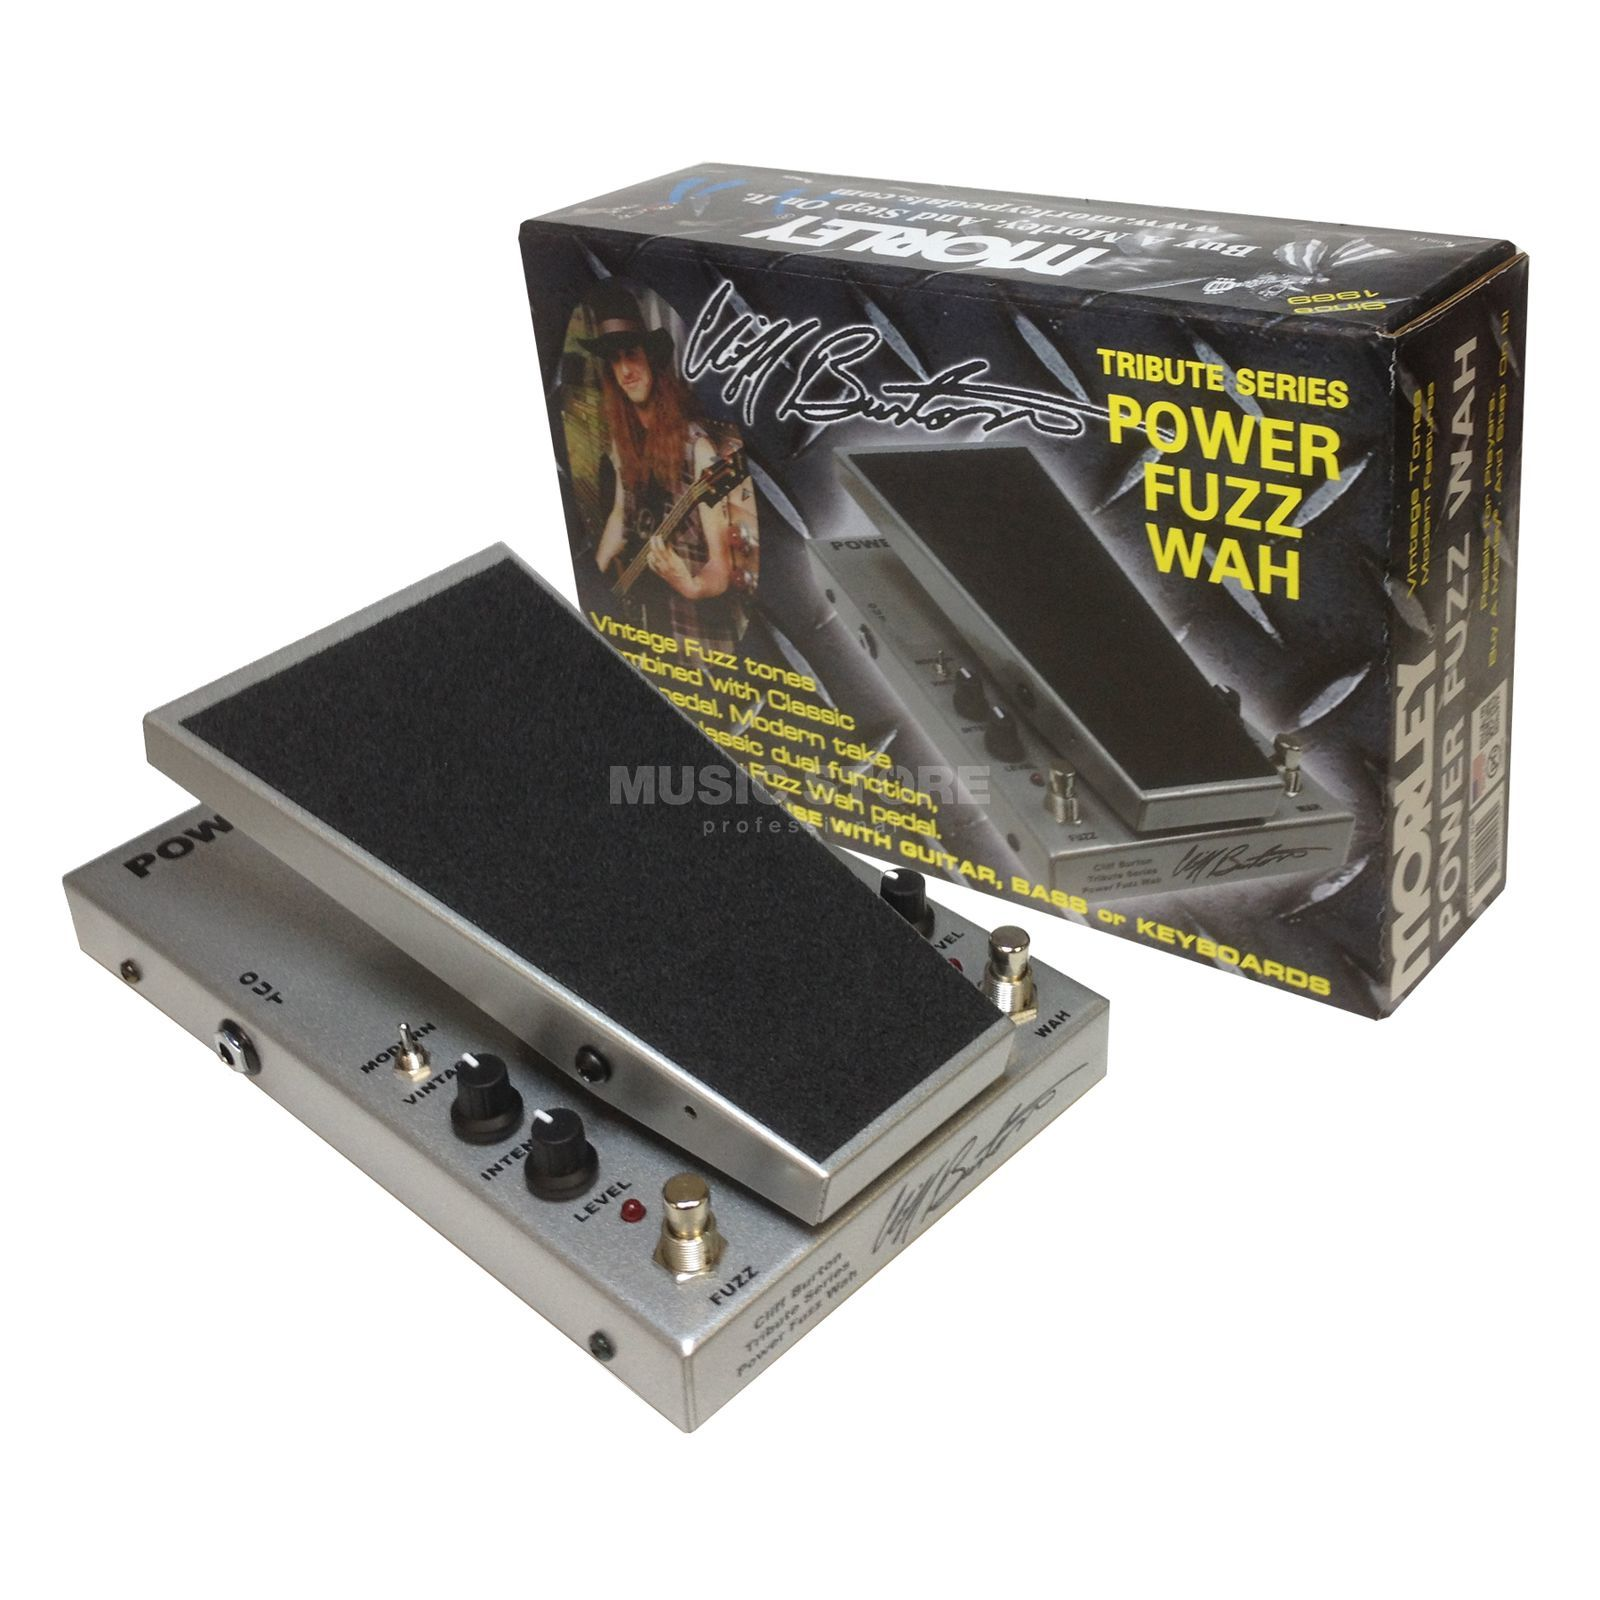 MORLEY M2 Cliff Burton Tribute Power Fuzz Wah Produktbild